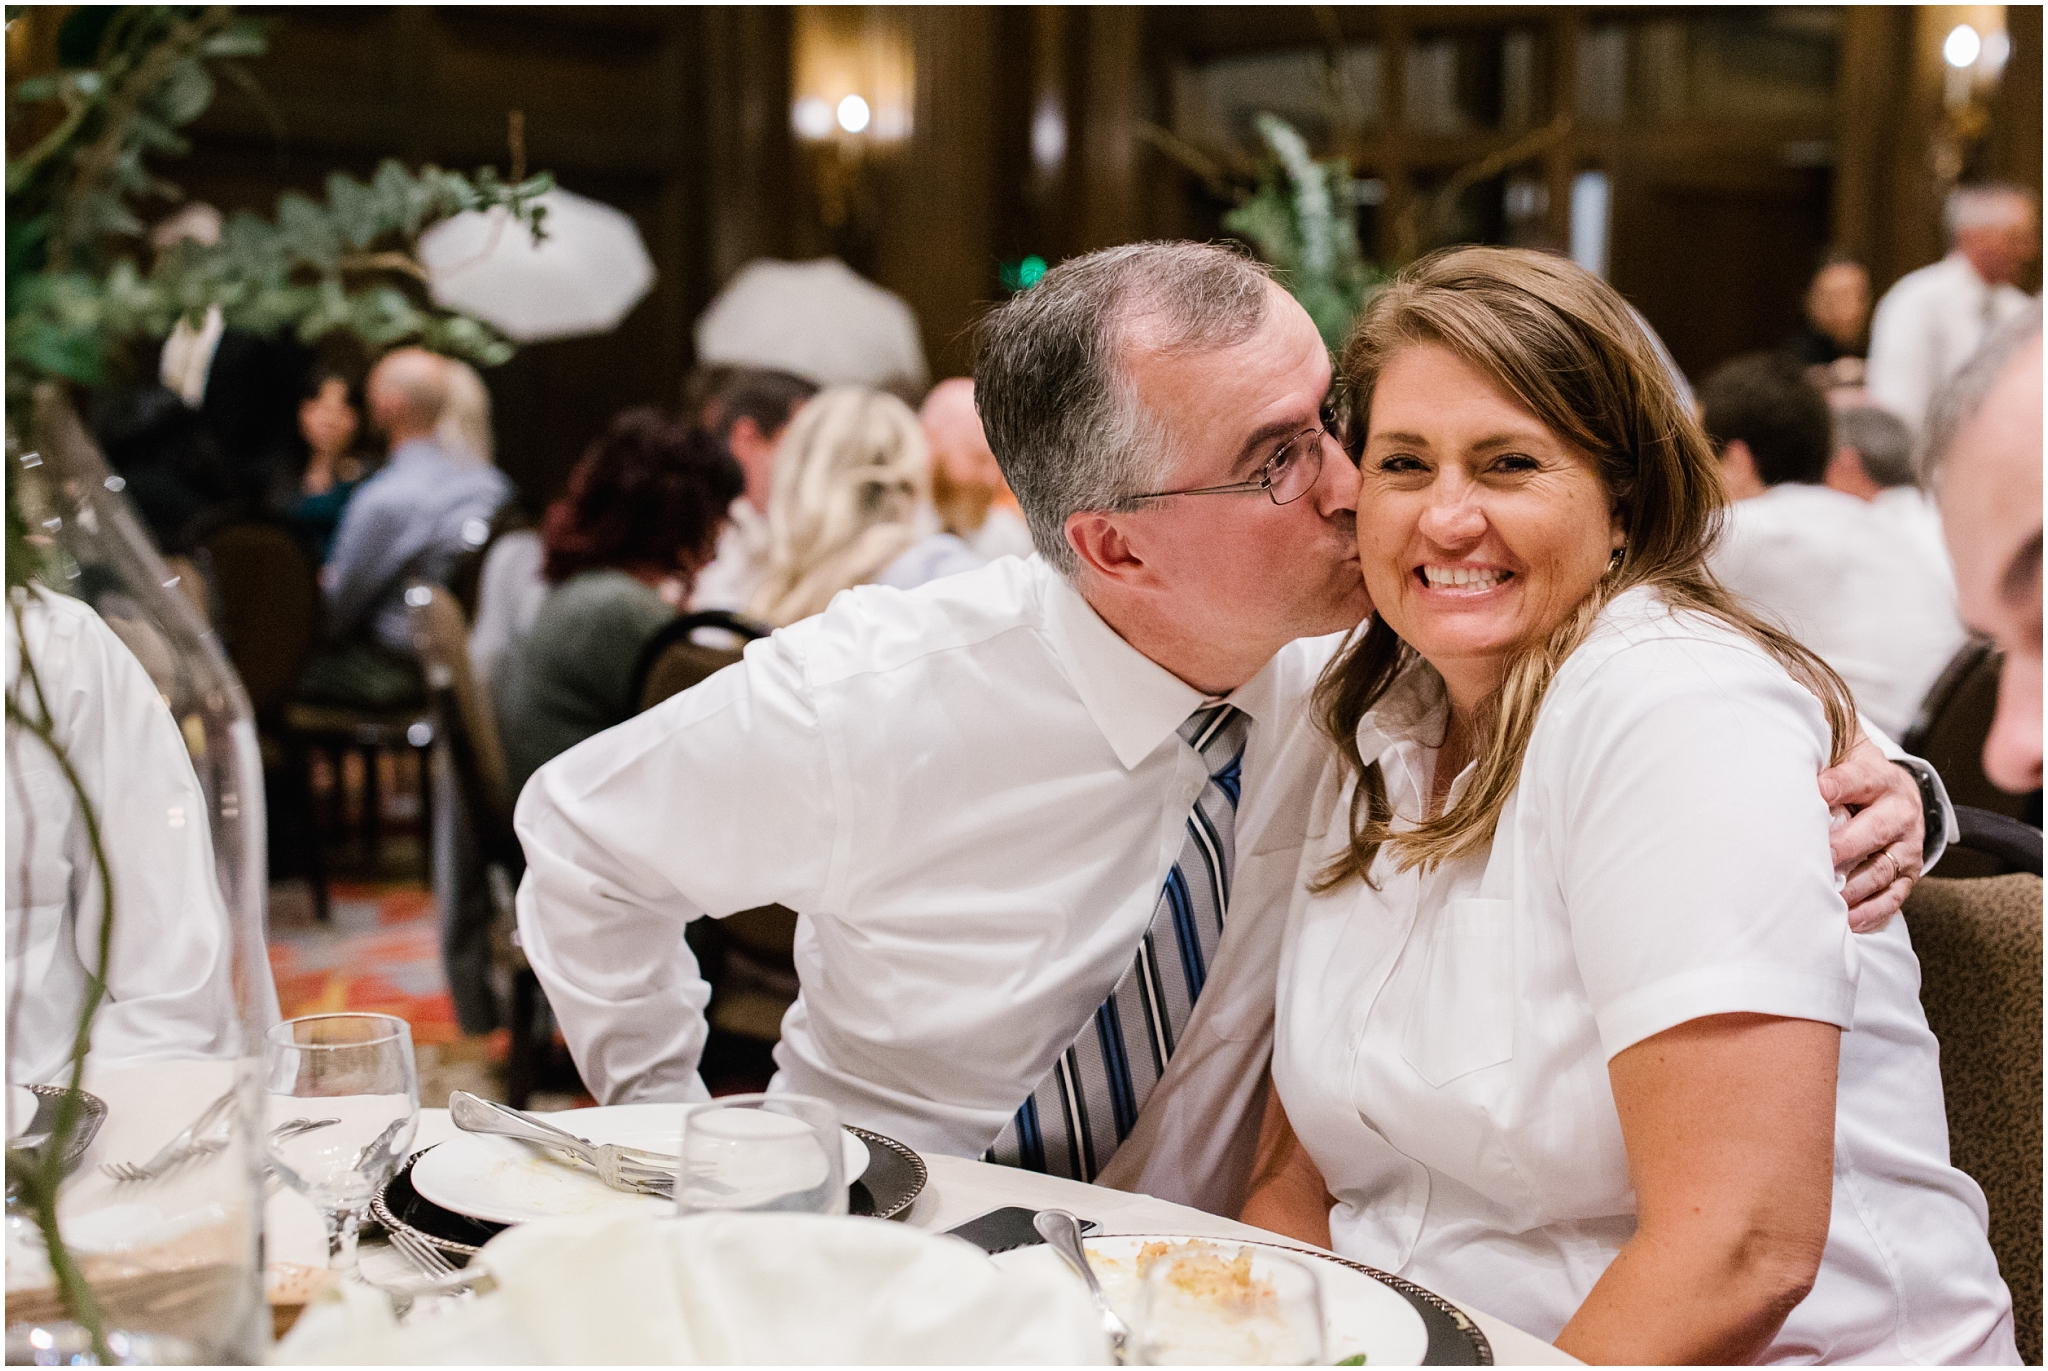 JC-Wedding-338_Lizzie-B-Imagery-Utah-Wedding-Photographer-Salt-Lake-City-Temple-Joseph-Smith-Memorial-Building-Reception.jpg